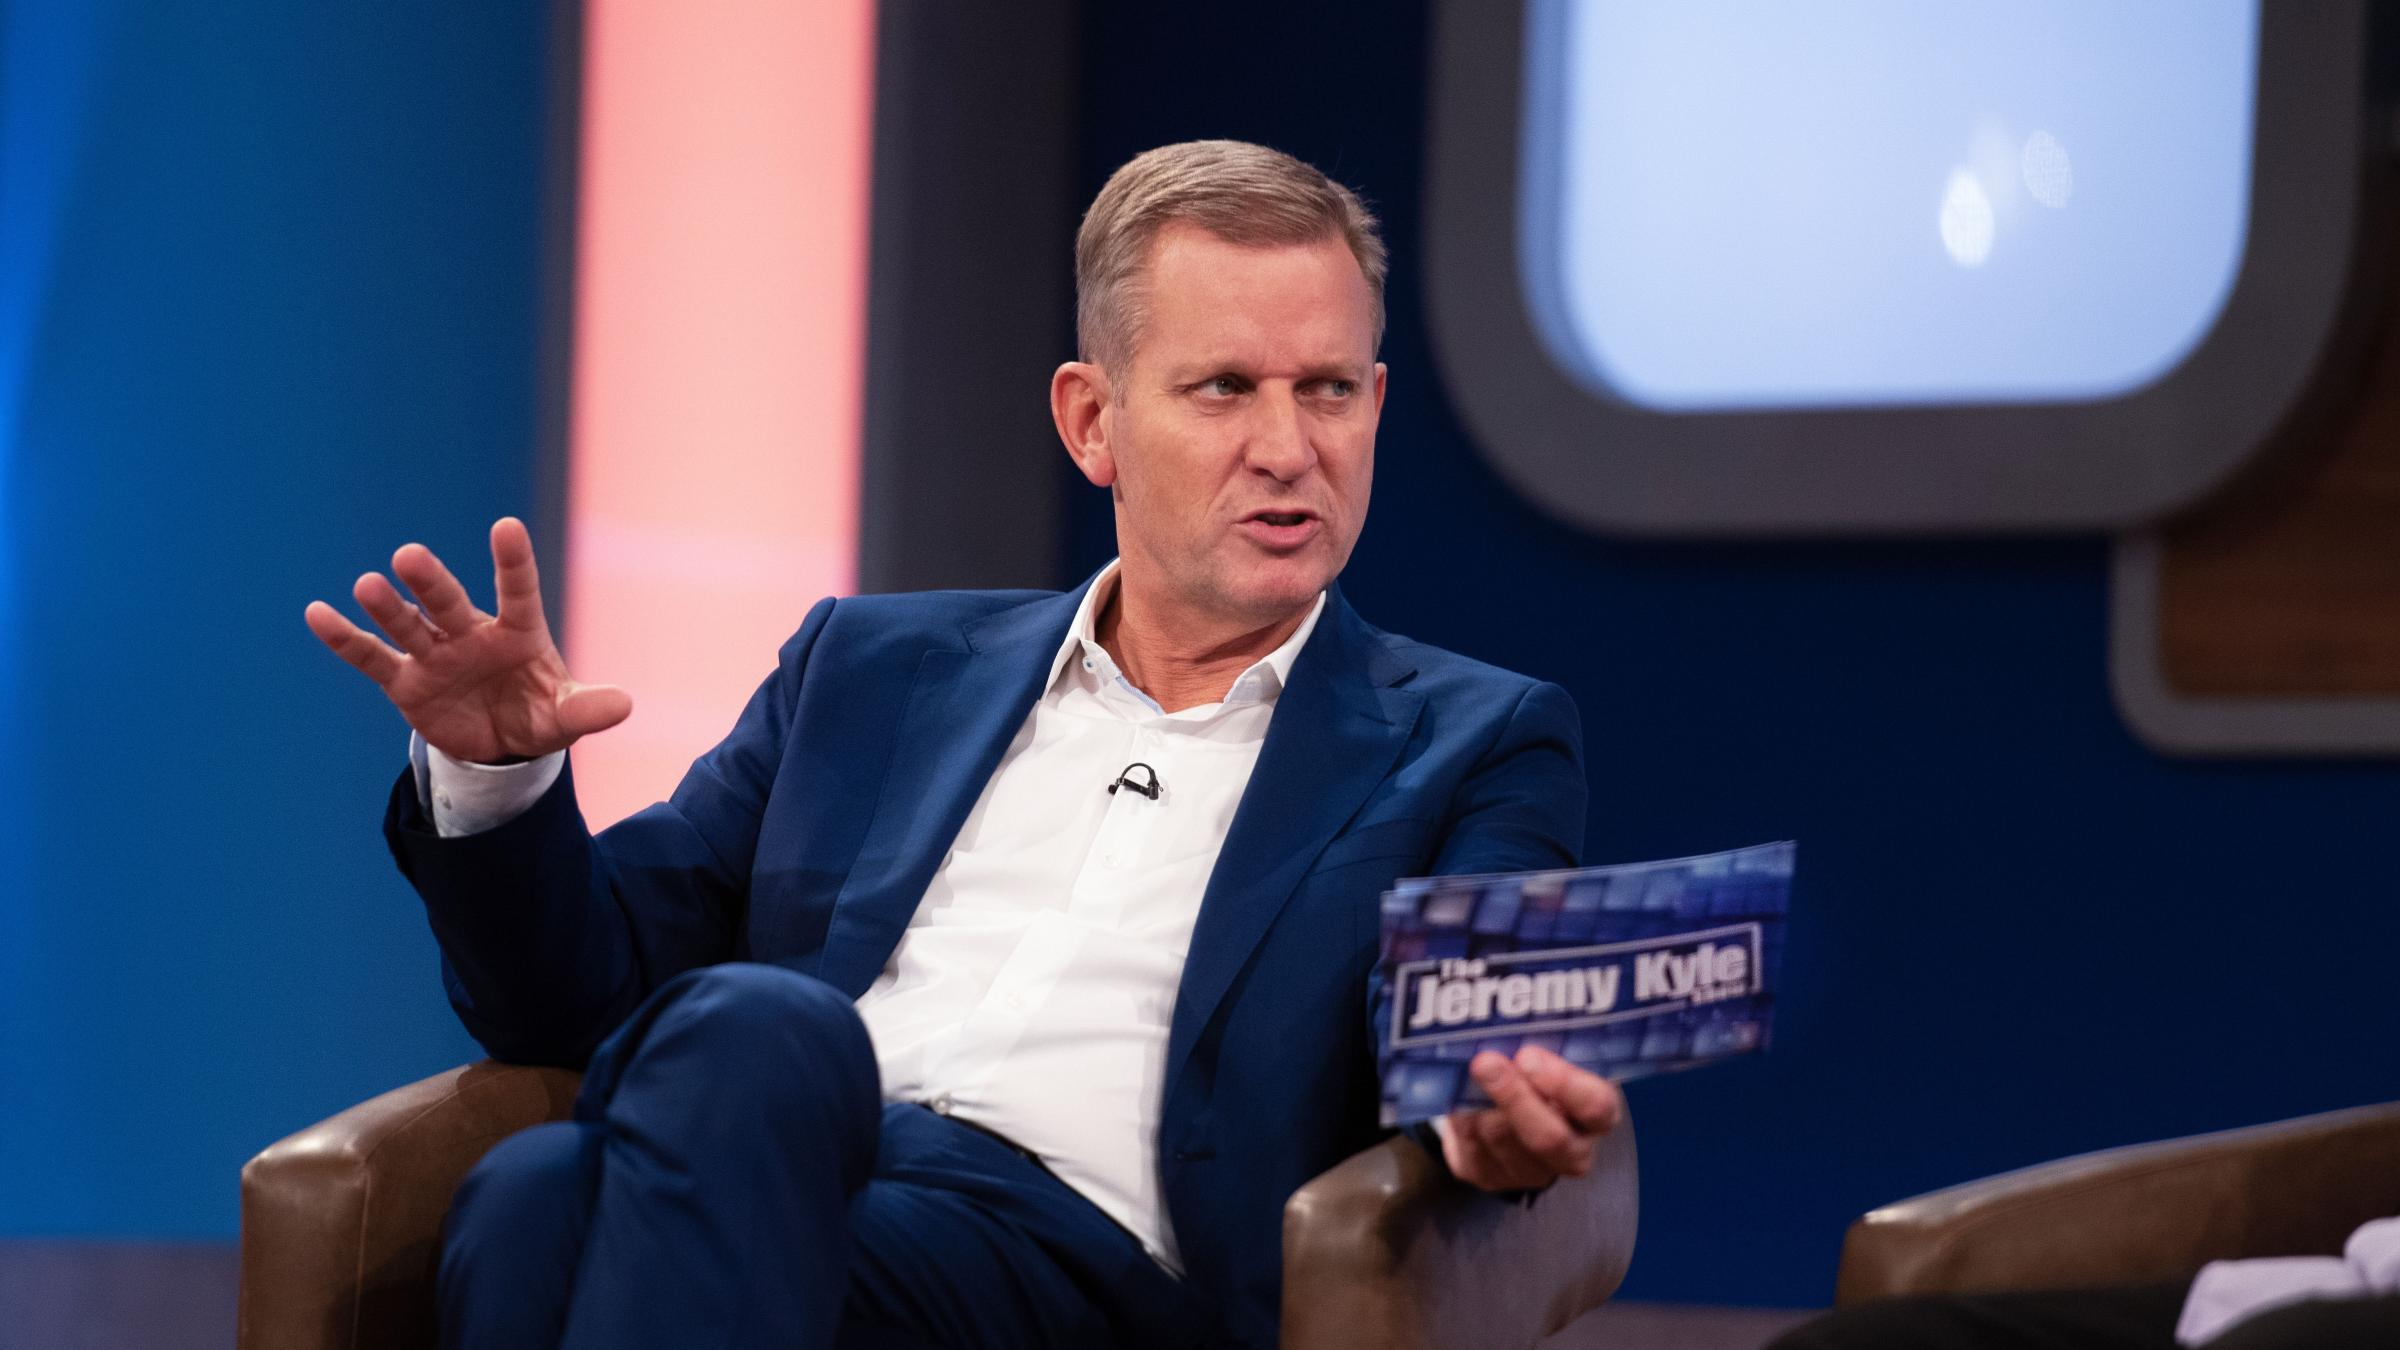 Jeremy Kyle breaks silence as his TV show is cancelled permanently